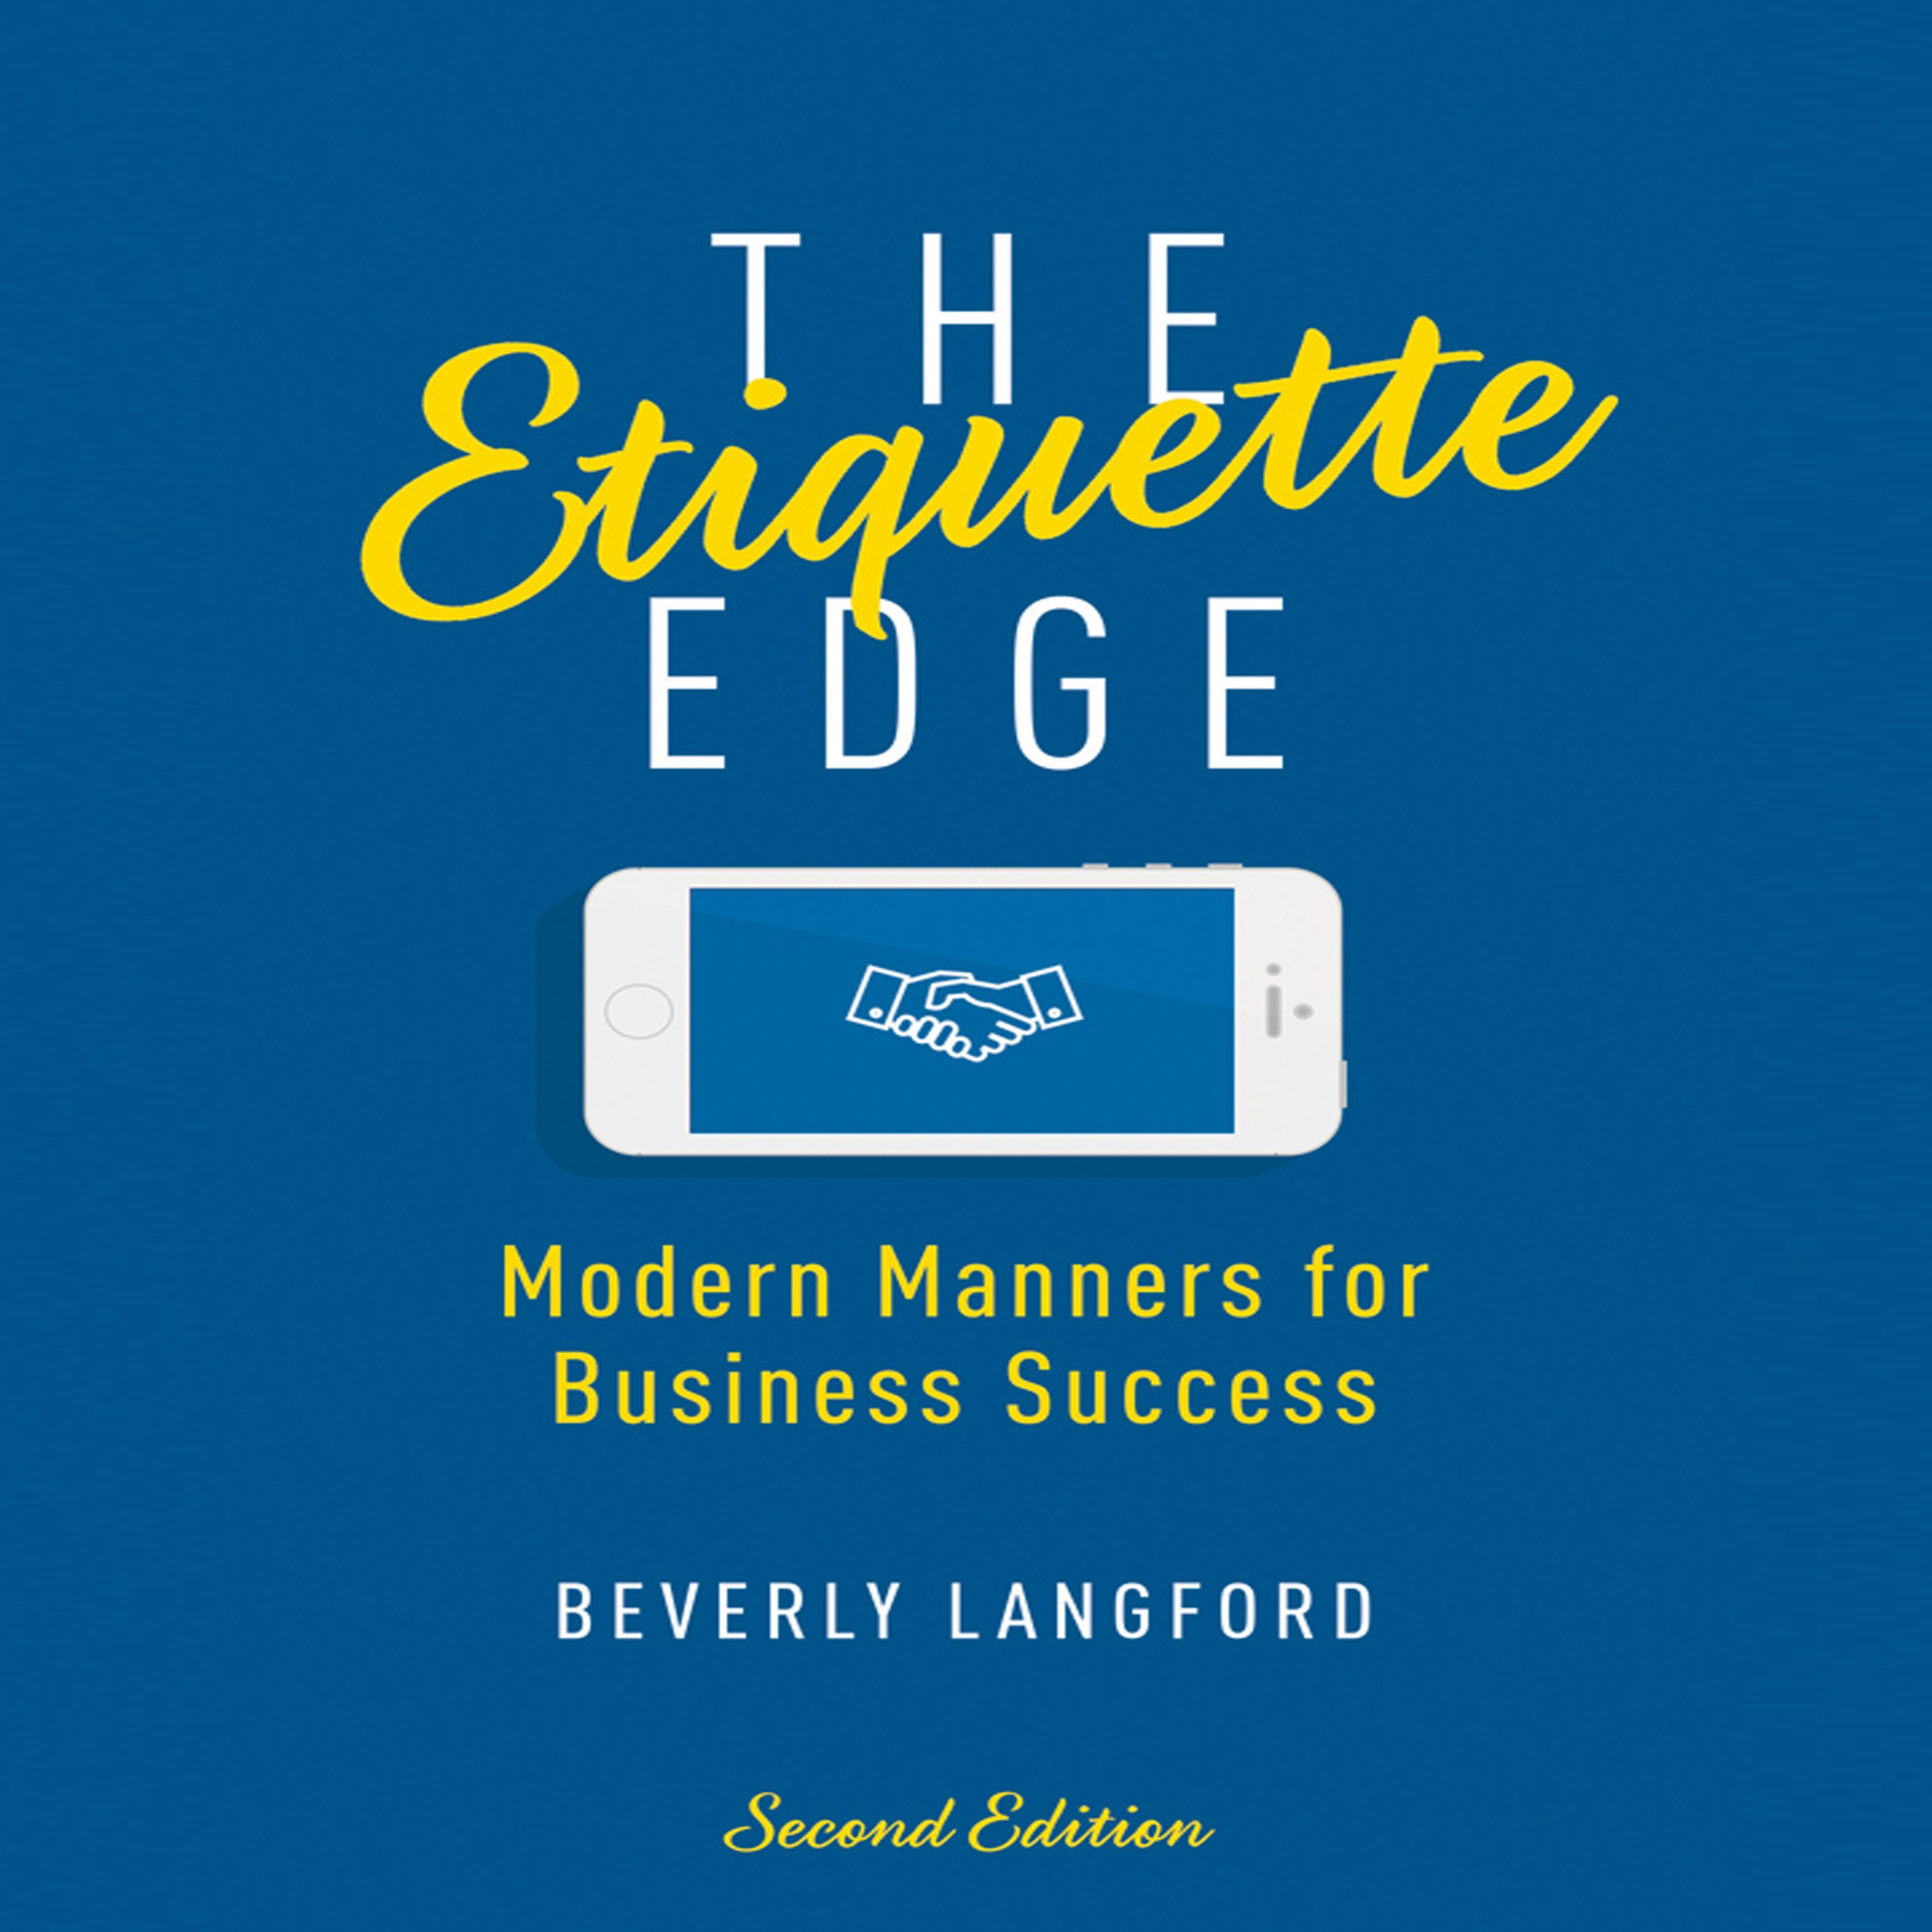 The Etiquette Edge: Modern Manners for Business Success, 2nd Edition